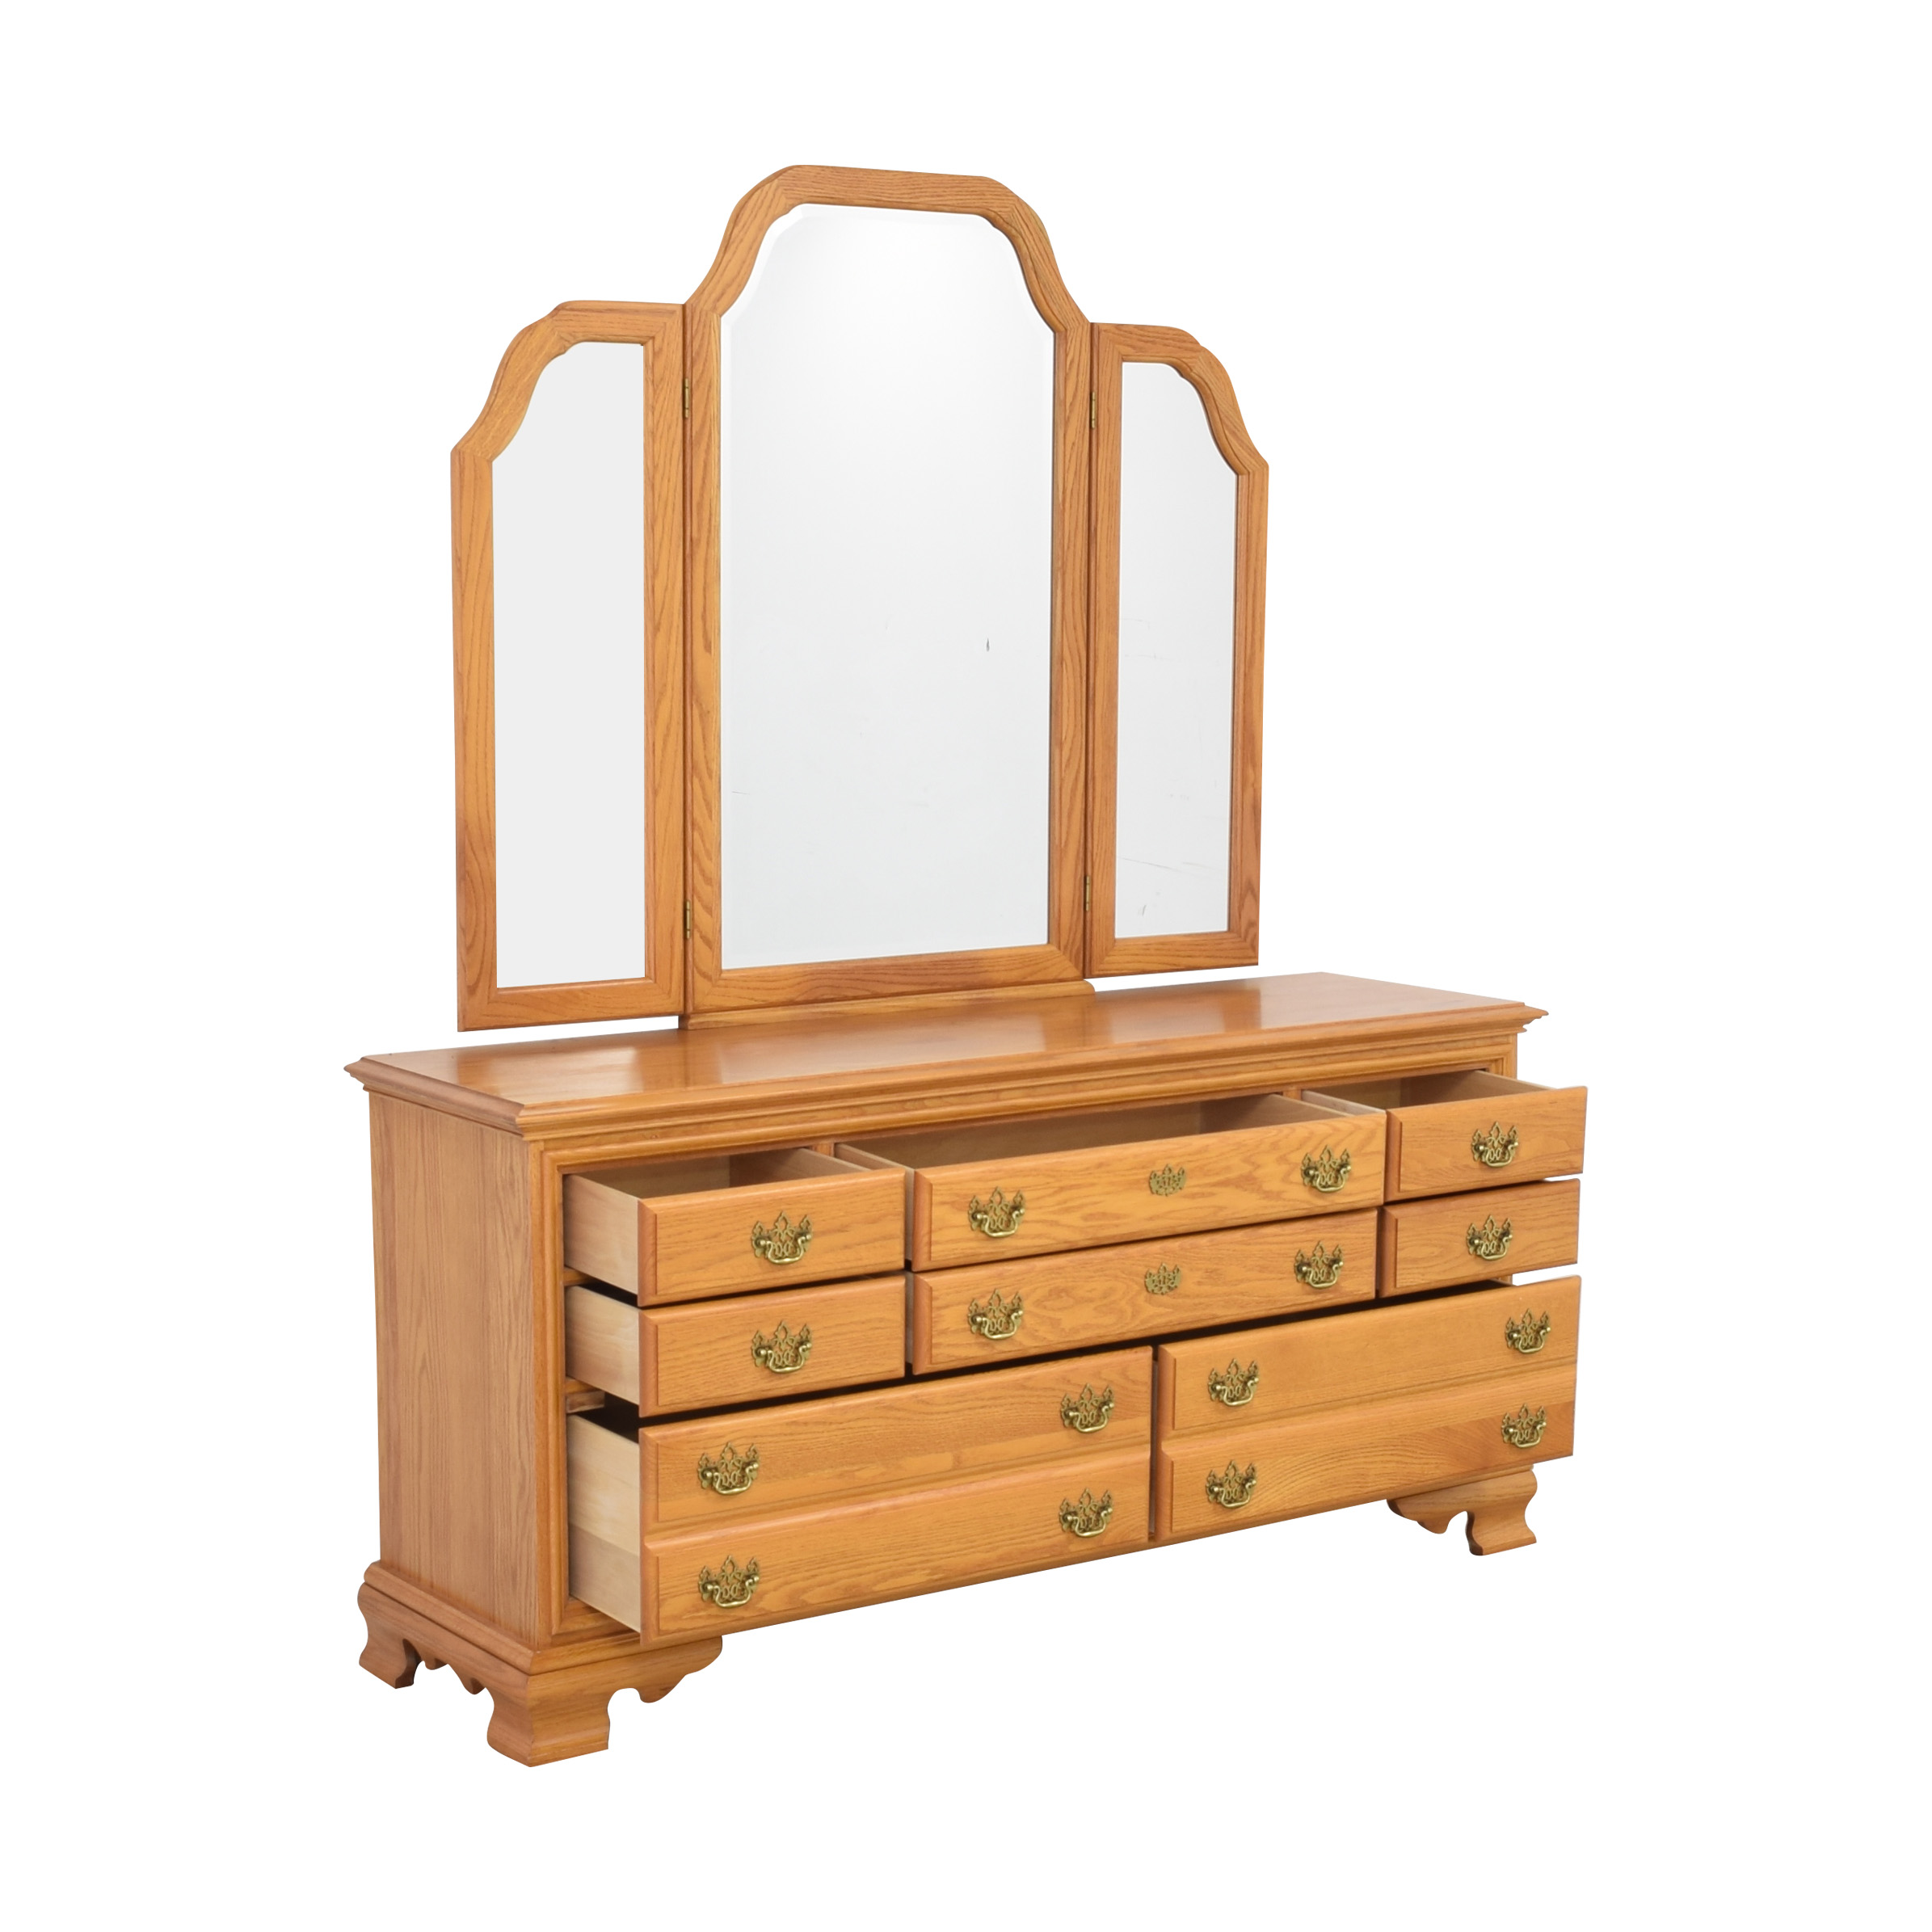 buy Masterfield Furniture Eight Drawer Dresser with Mirror Masterfield Furniture